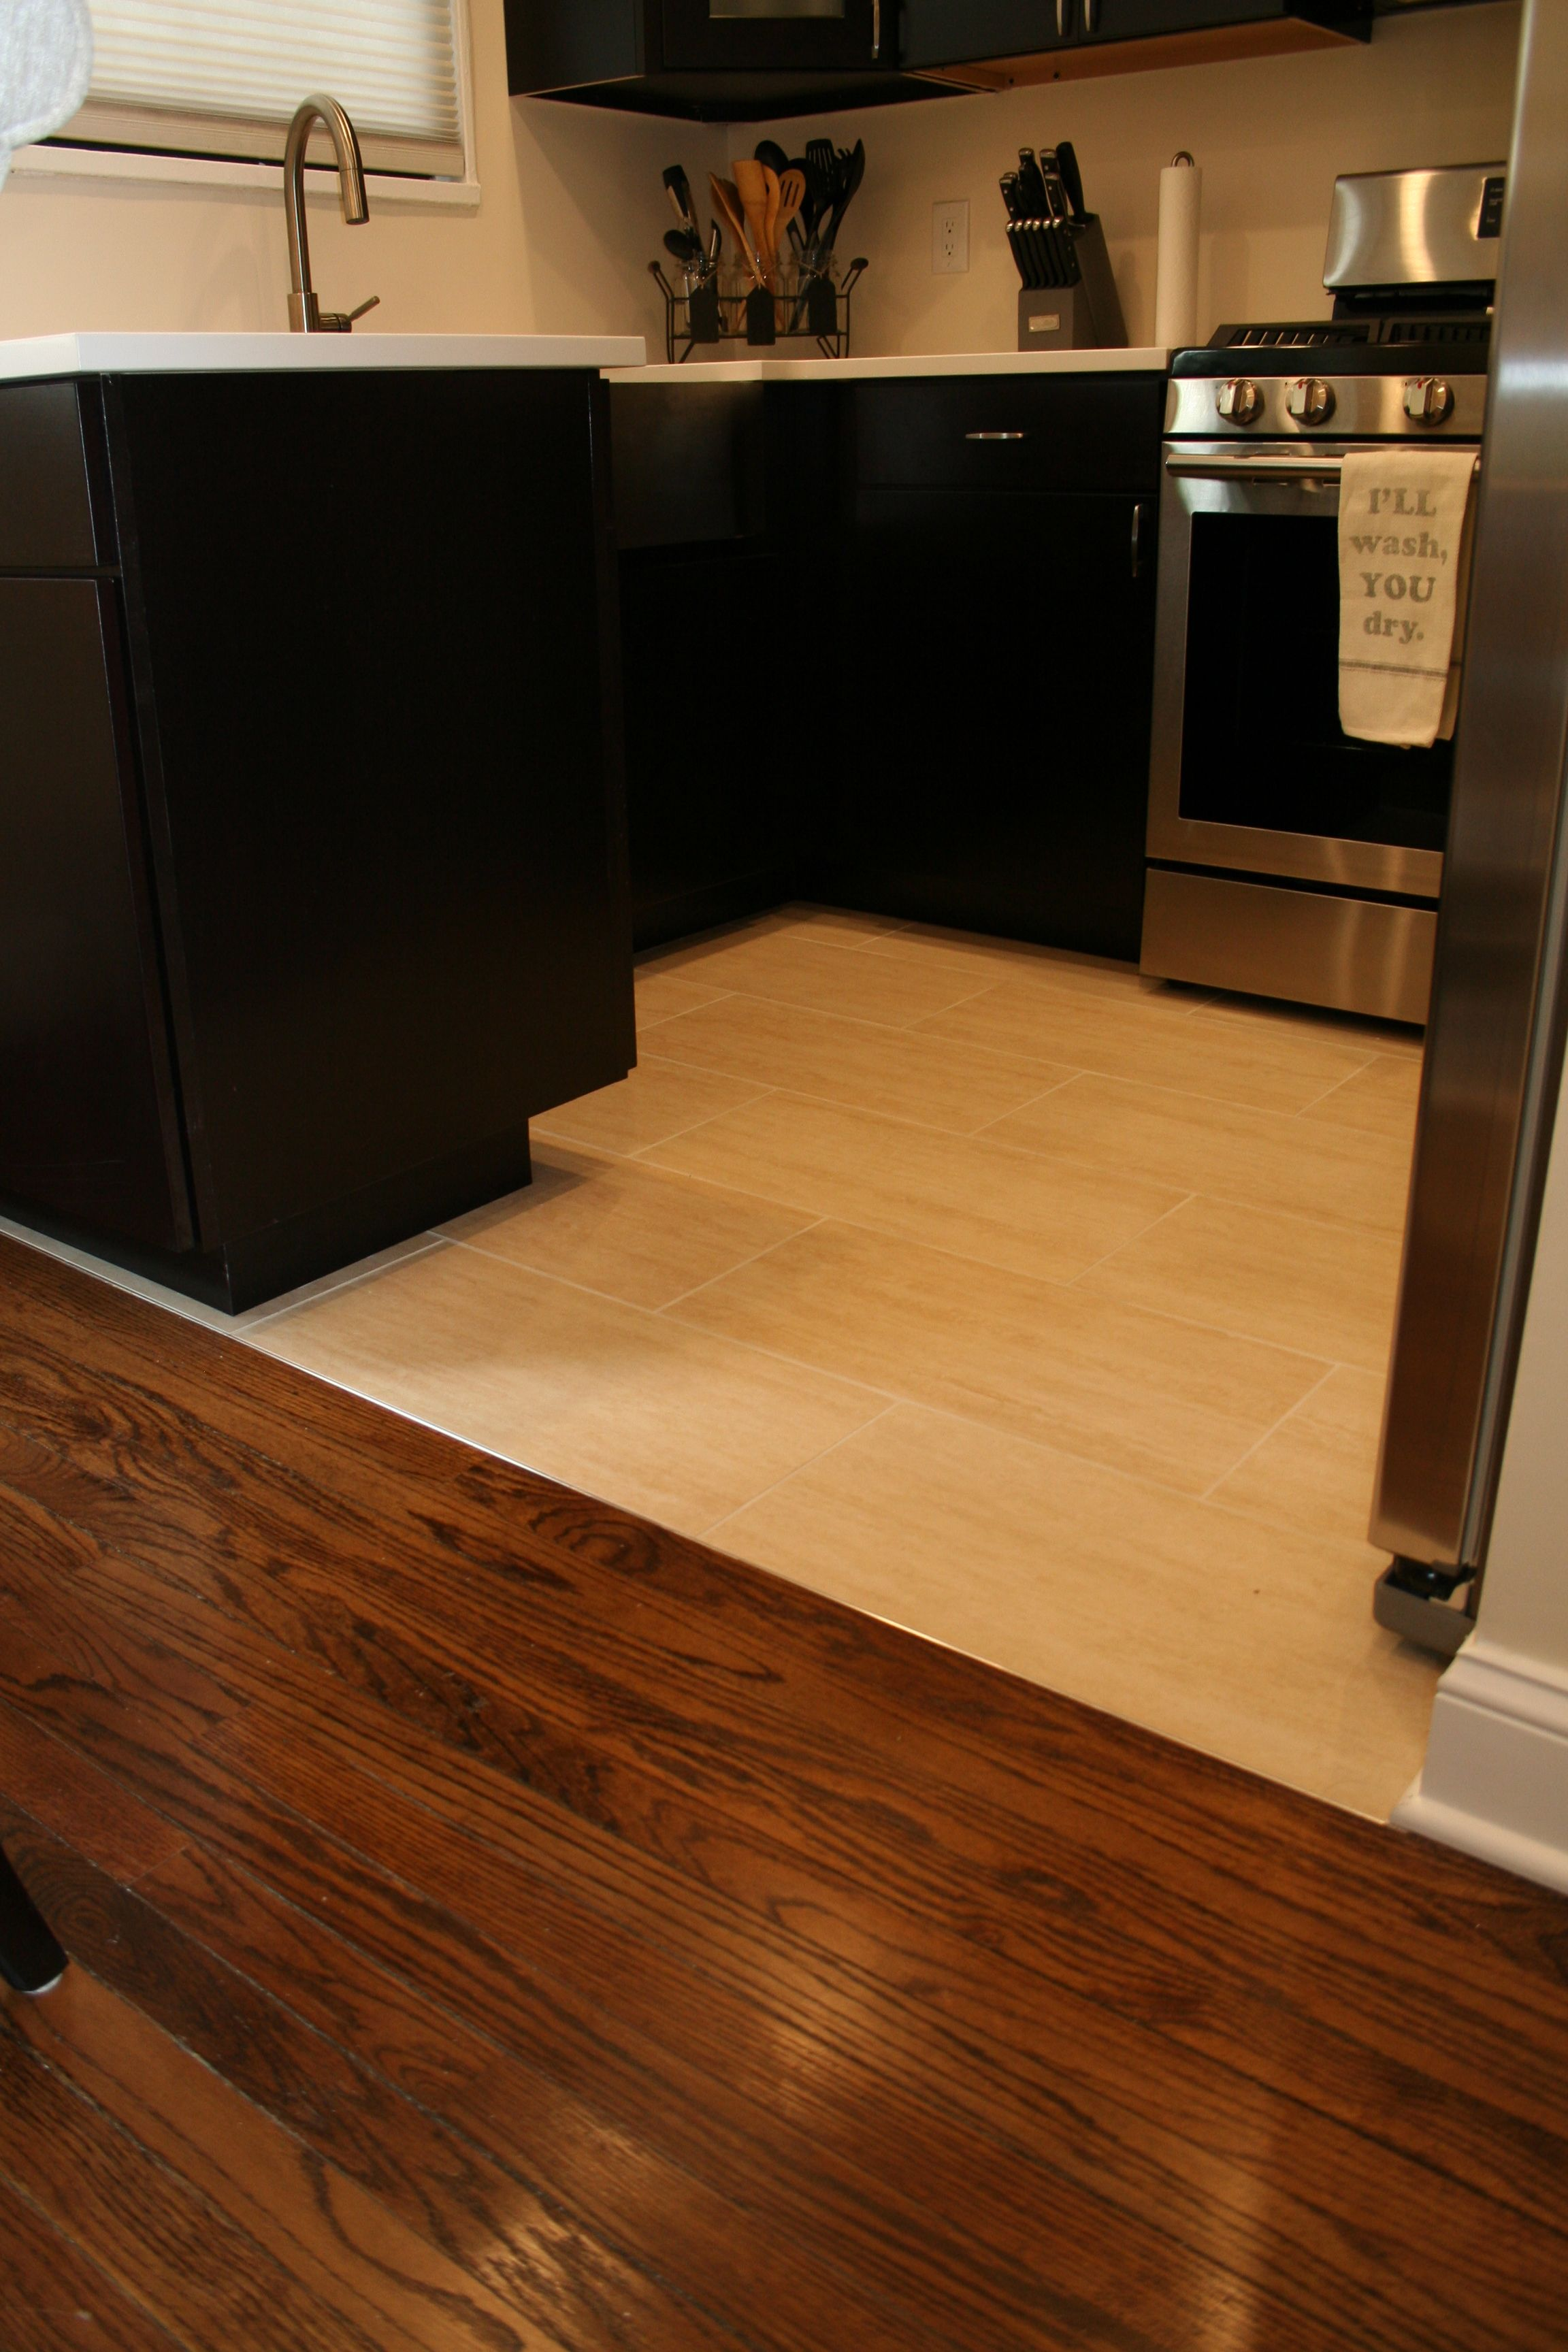 Transition from tile to wood floors light to dark flooring http transition from tile to wood floors light to dark flooring http dailygadgetfo Choice Image